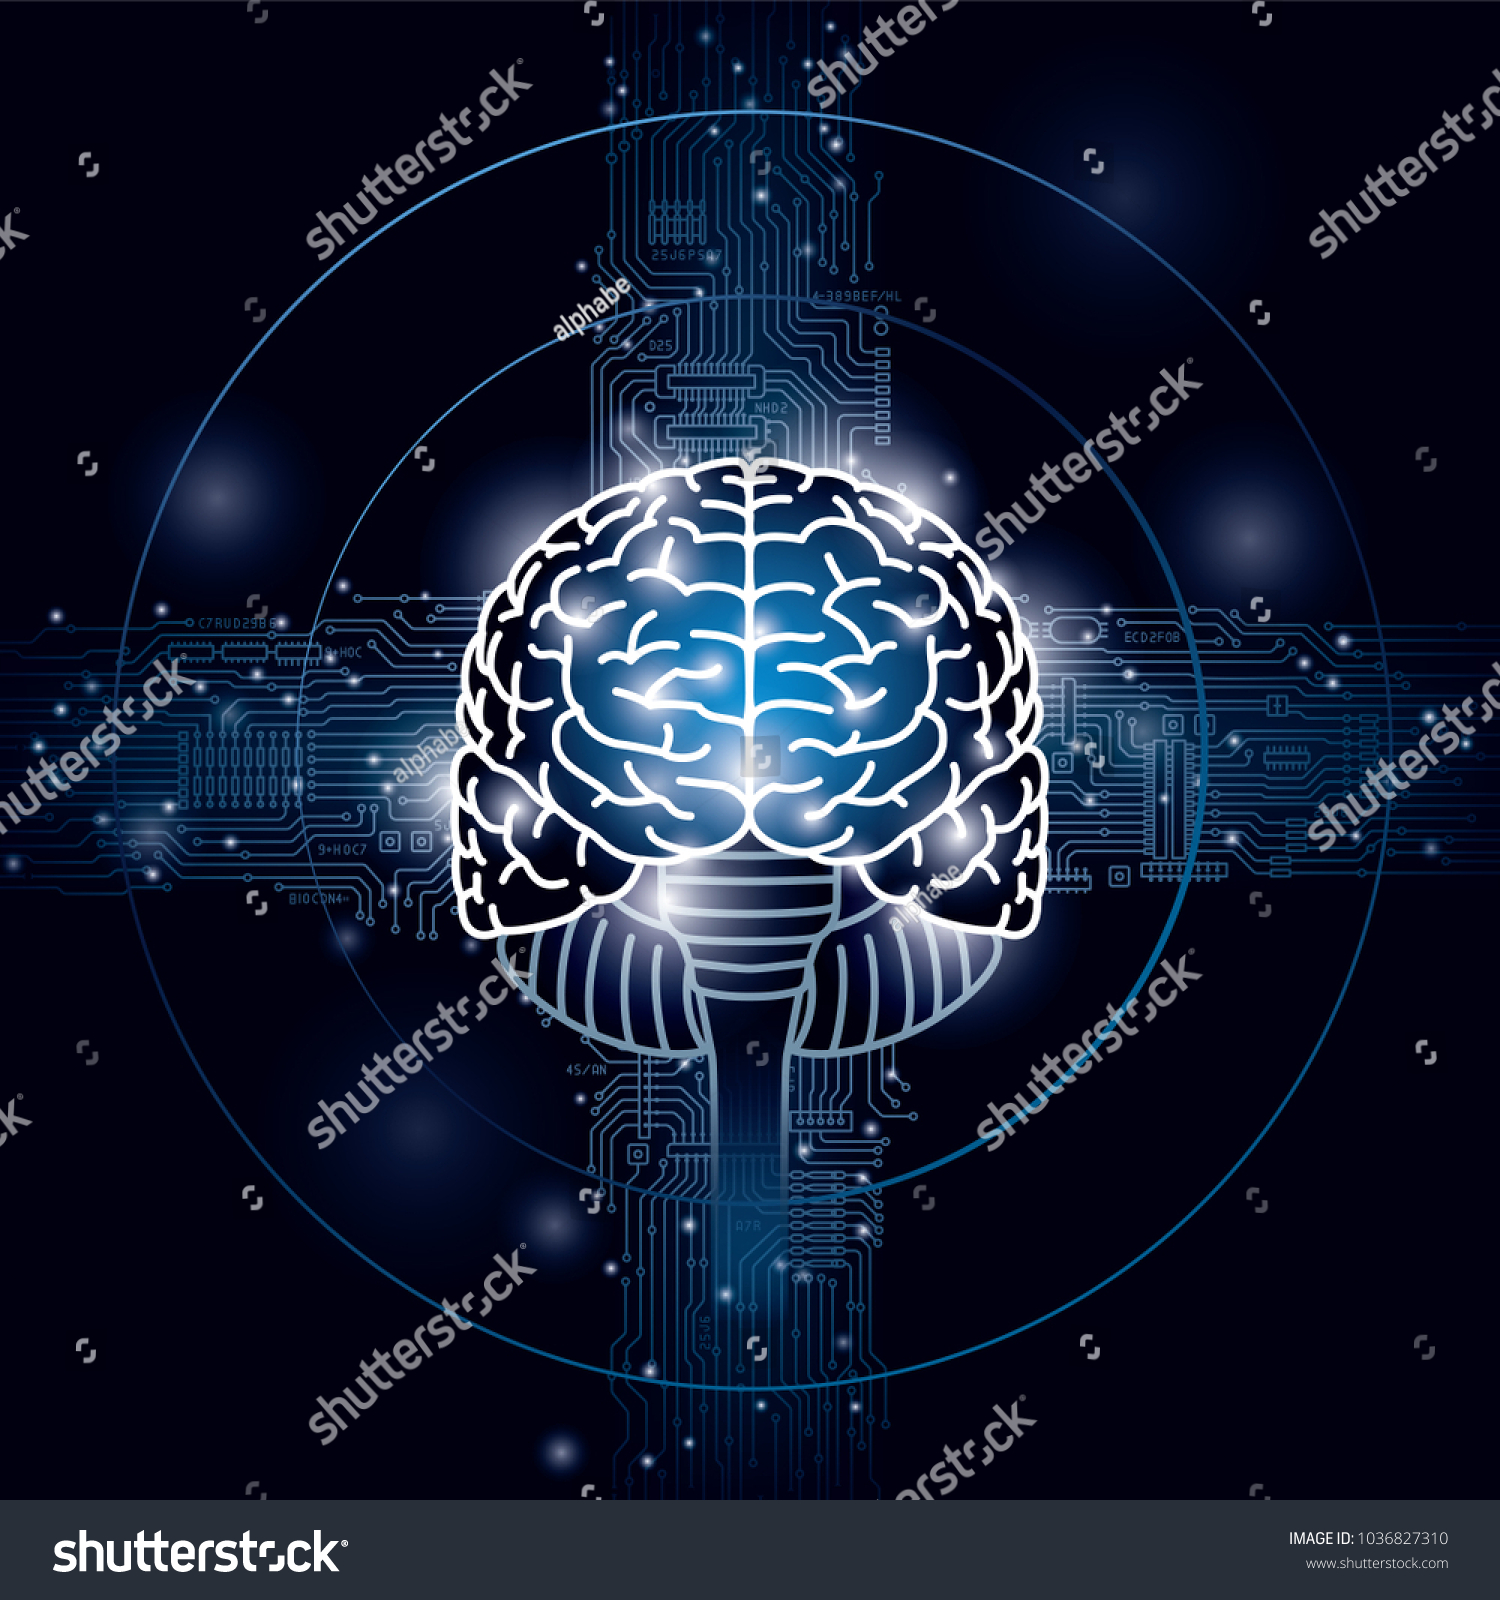 Image Brain Integrated Circuits Stock Vector Royalty Free And Symbol Of